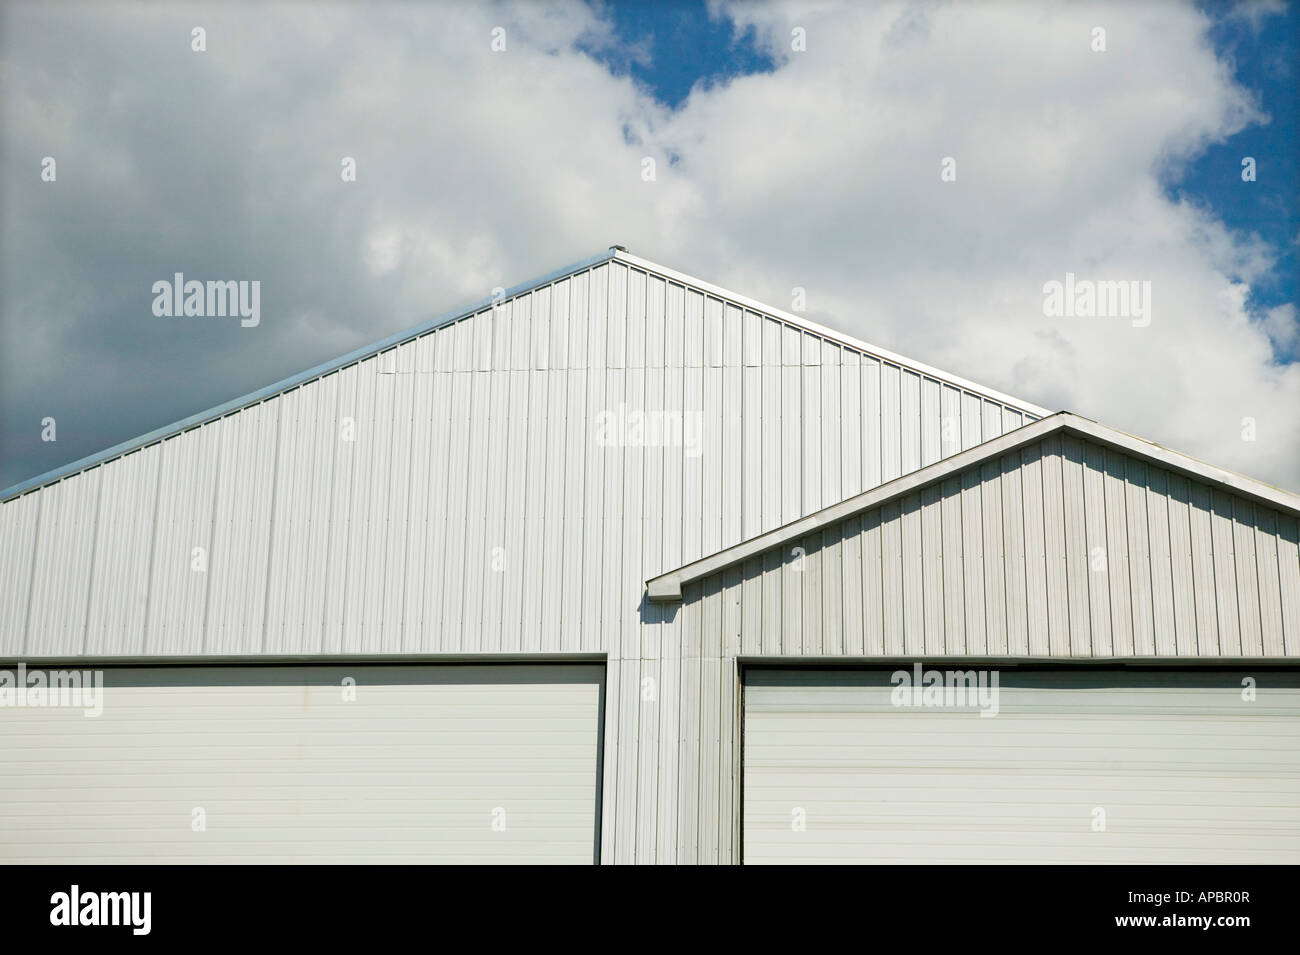 clean white roof lines at angles and triangle pattern with sky and clouds Garage storage facility under the roof - Stock Image